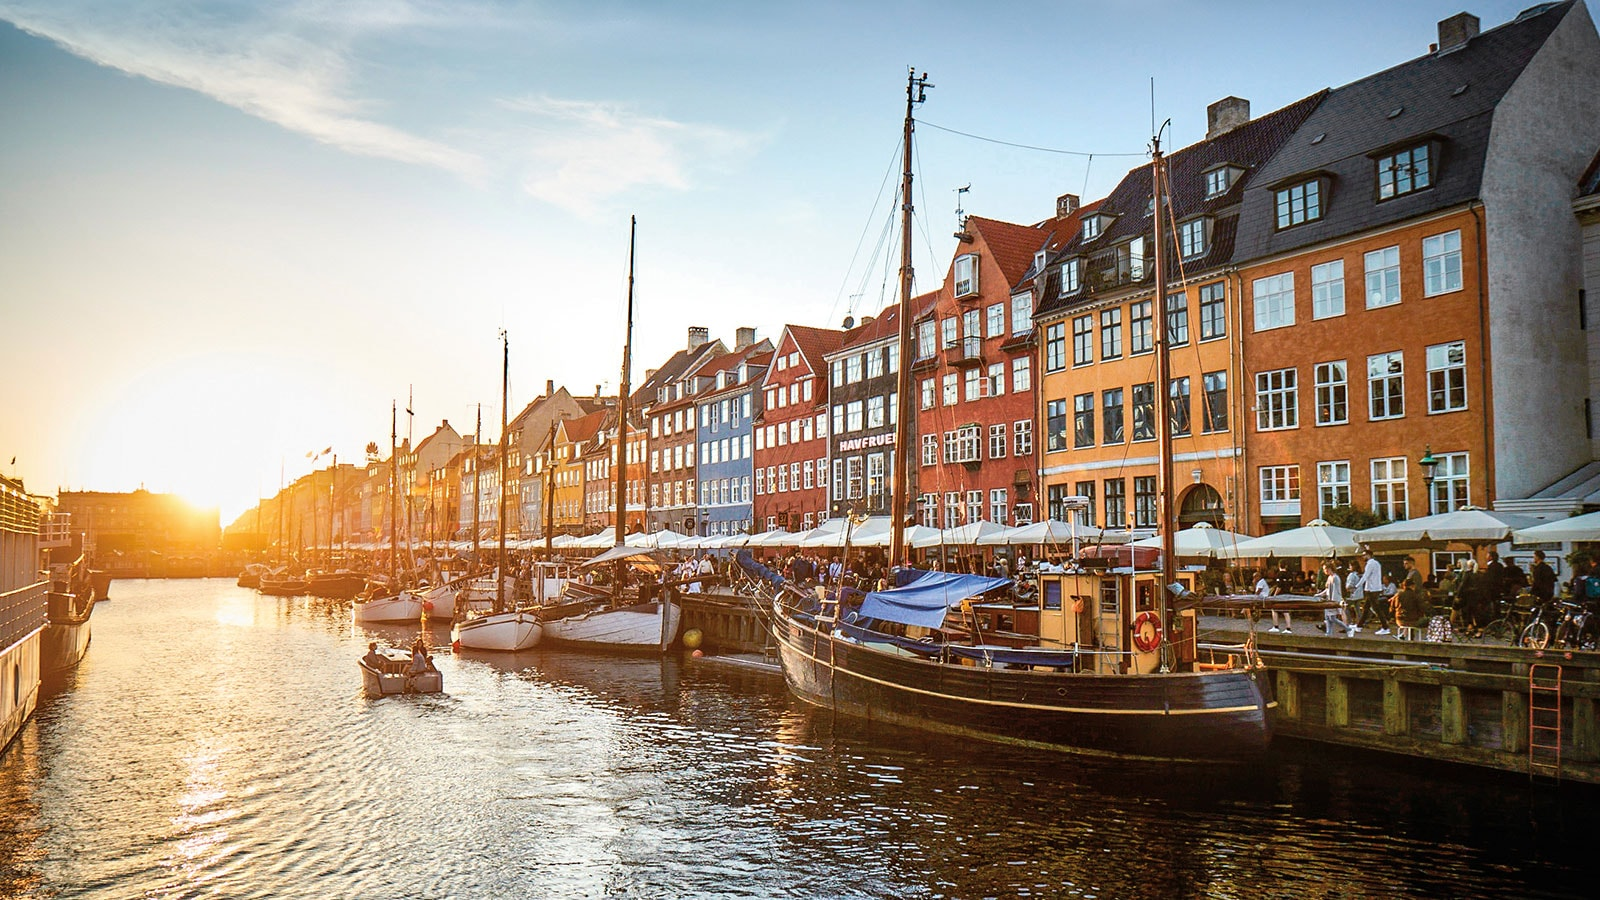 Sightseeing canal in Copenhagen on Europe cruise